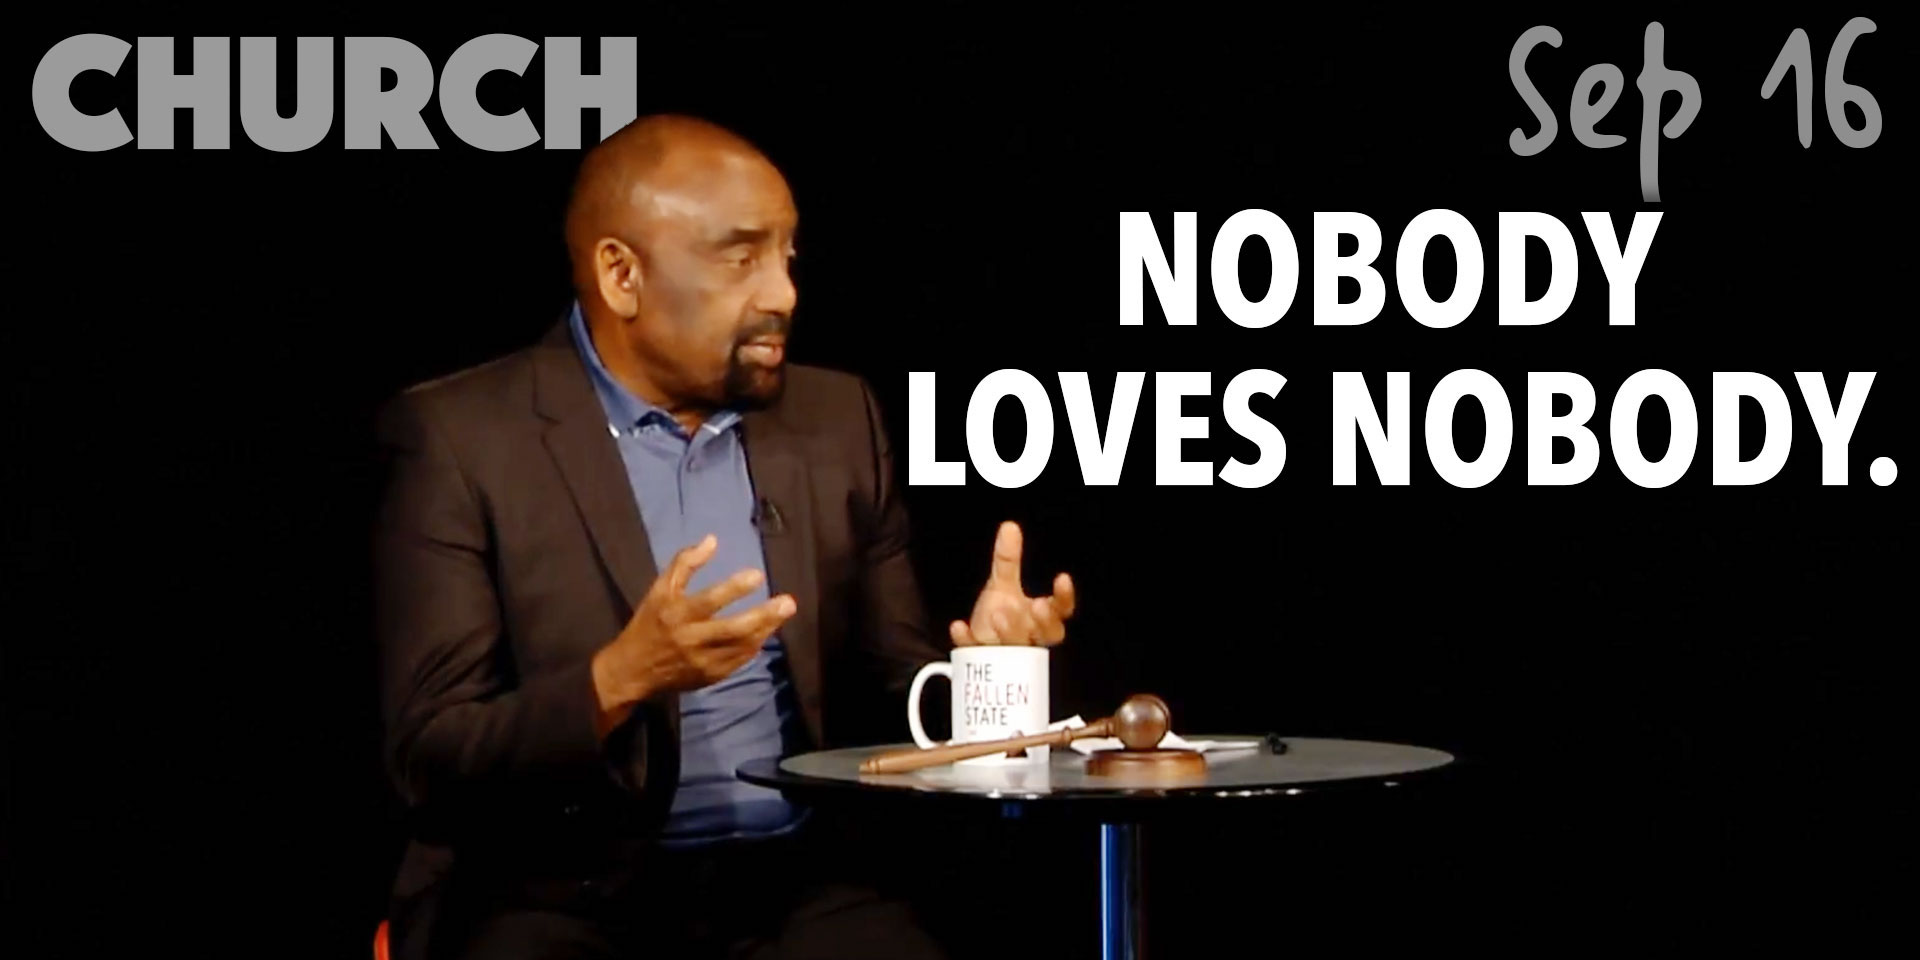 Church Sept. 16: Nobody Loves Nobody